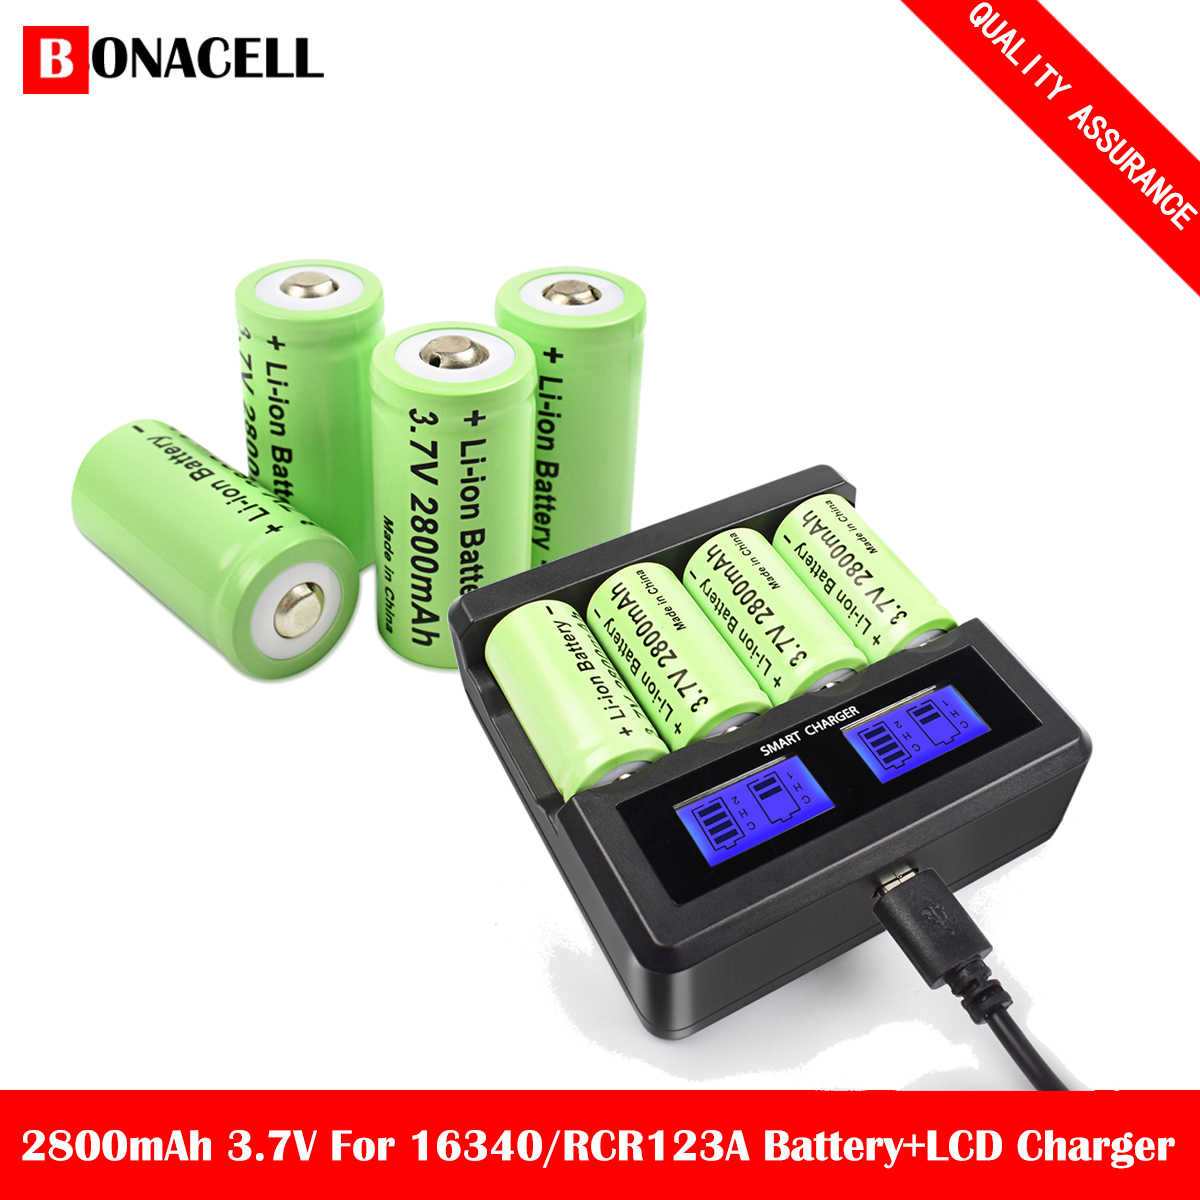 bonacell 3.7V 2800mAh Li-ion 16340 Battery CR123A Rechargeable Batteries CR123 for Laser Pen LED Flashlight Cell,Security Camera